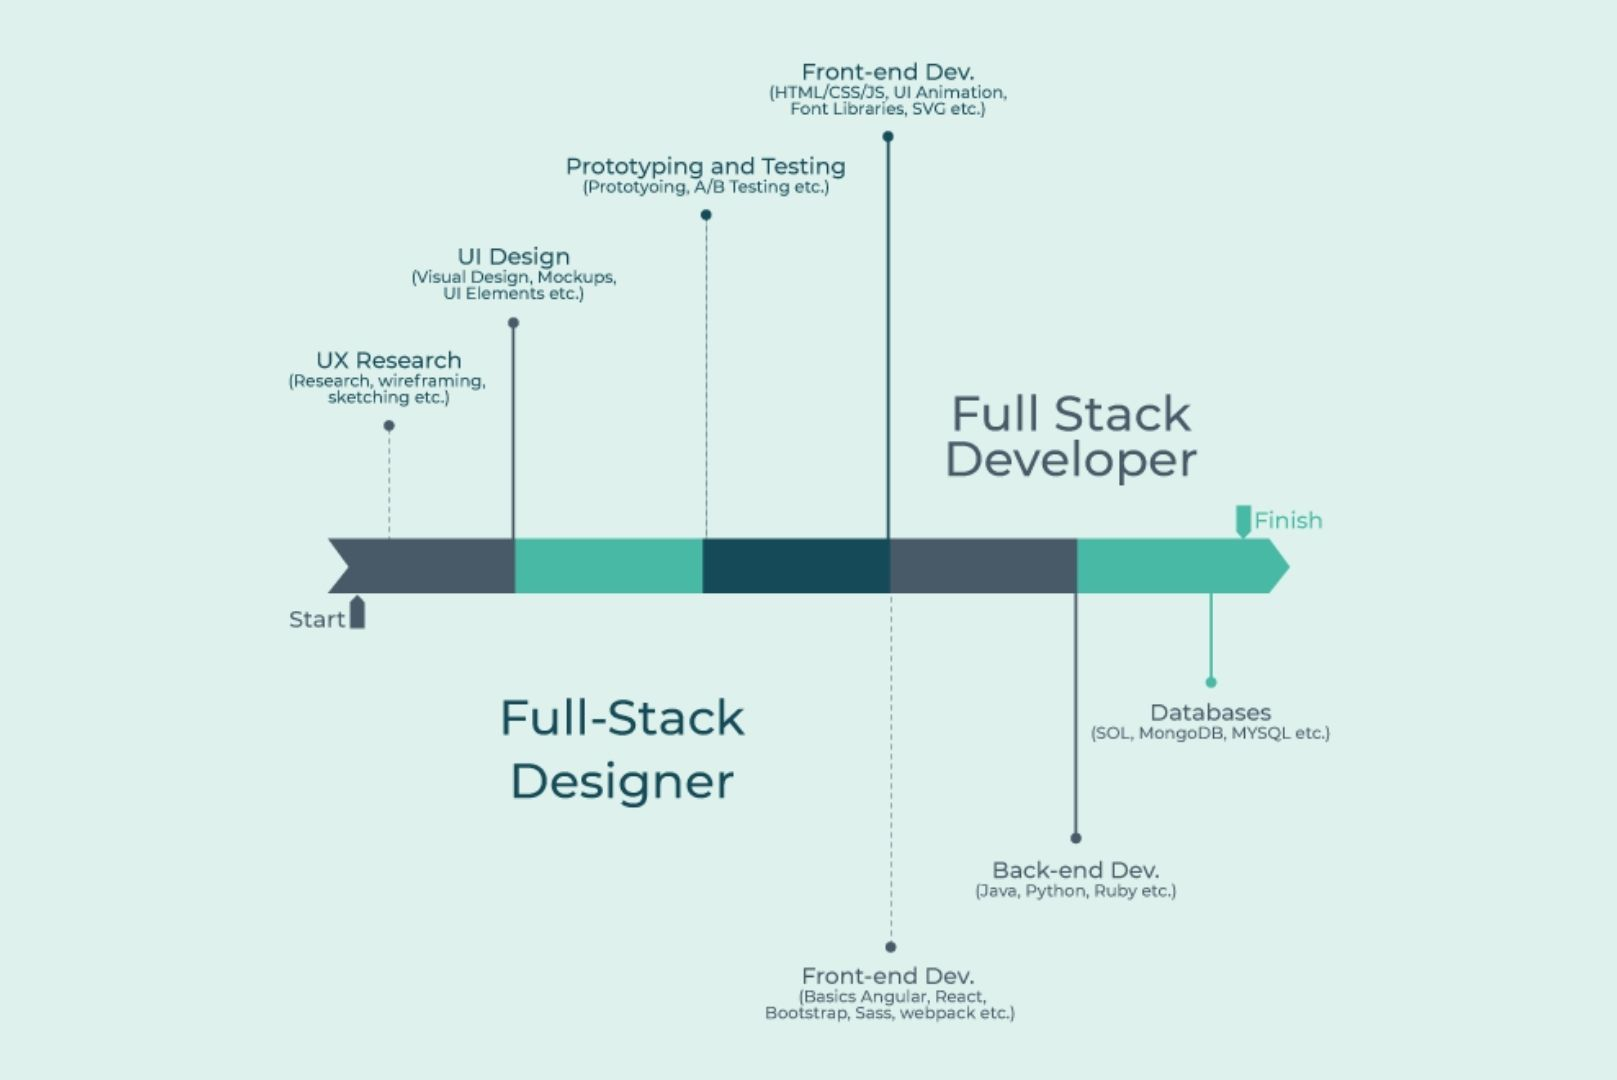 Factors to consider implementing full-stack development